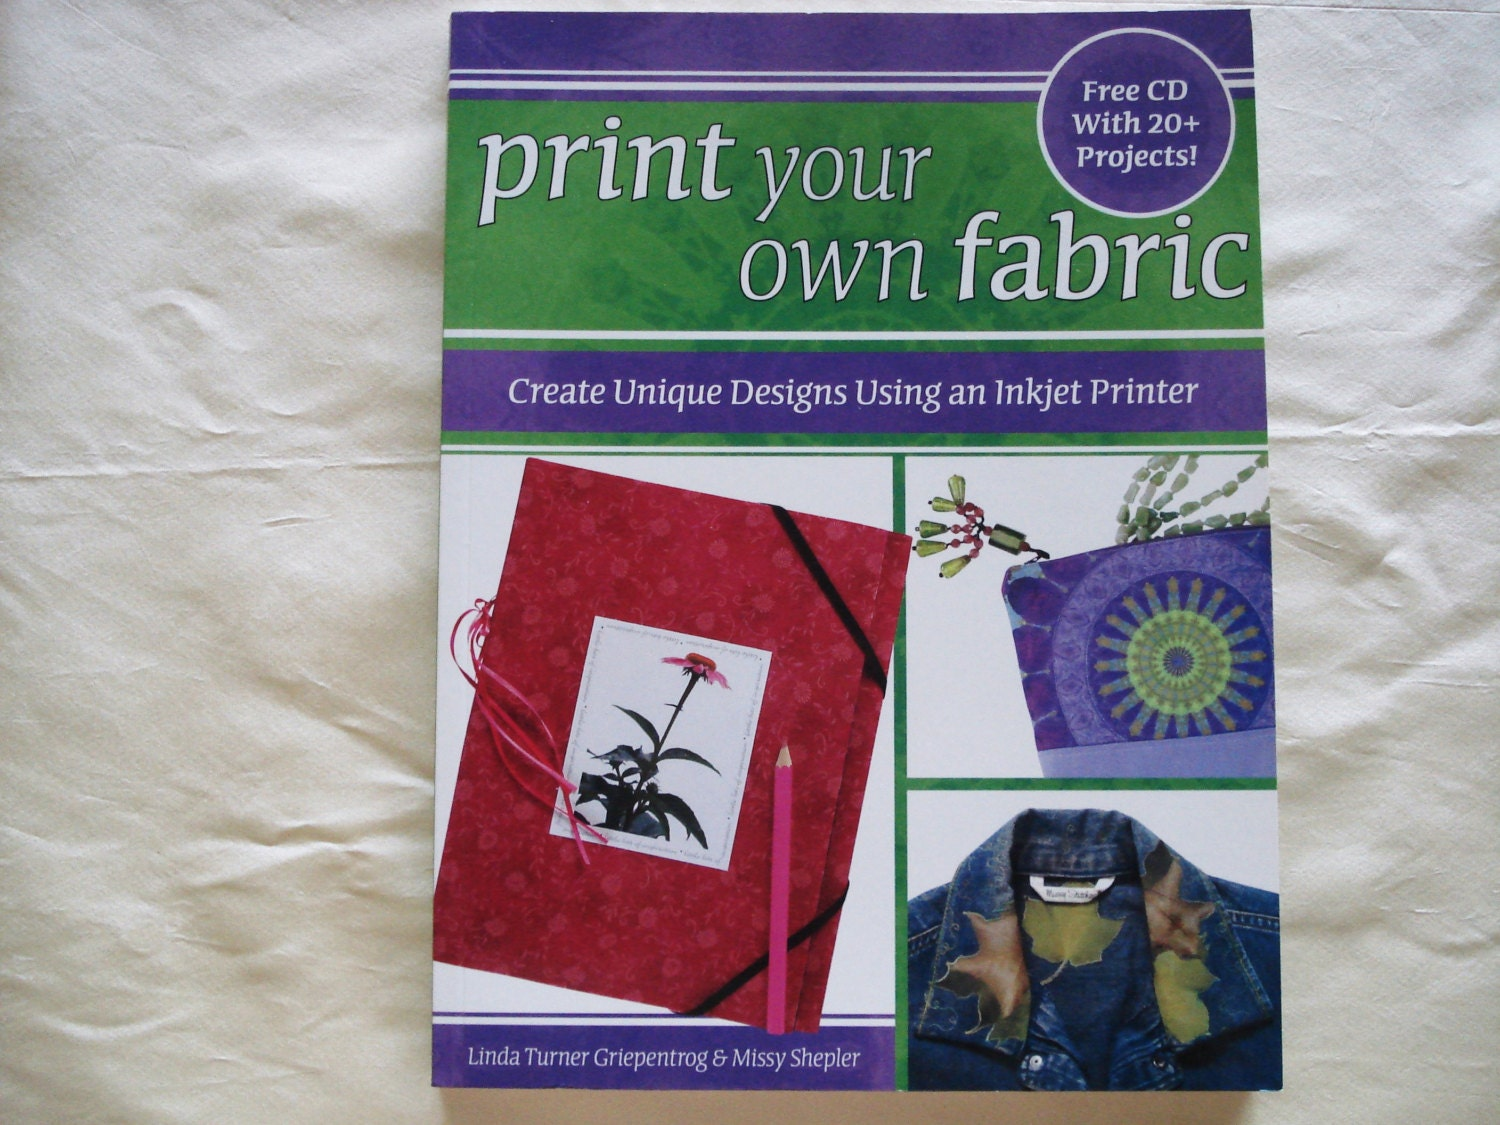 Fabric Book Covers Make Your Own : Print your own fabric soft cover book easy way to create